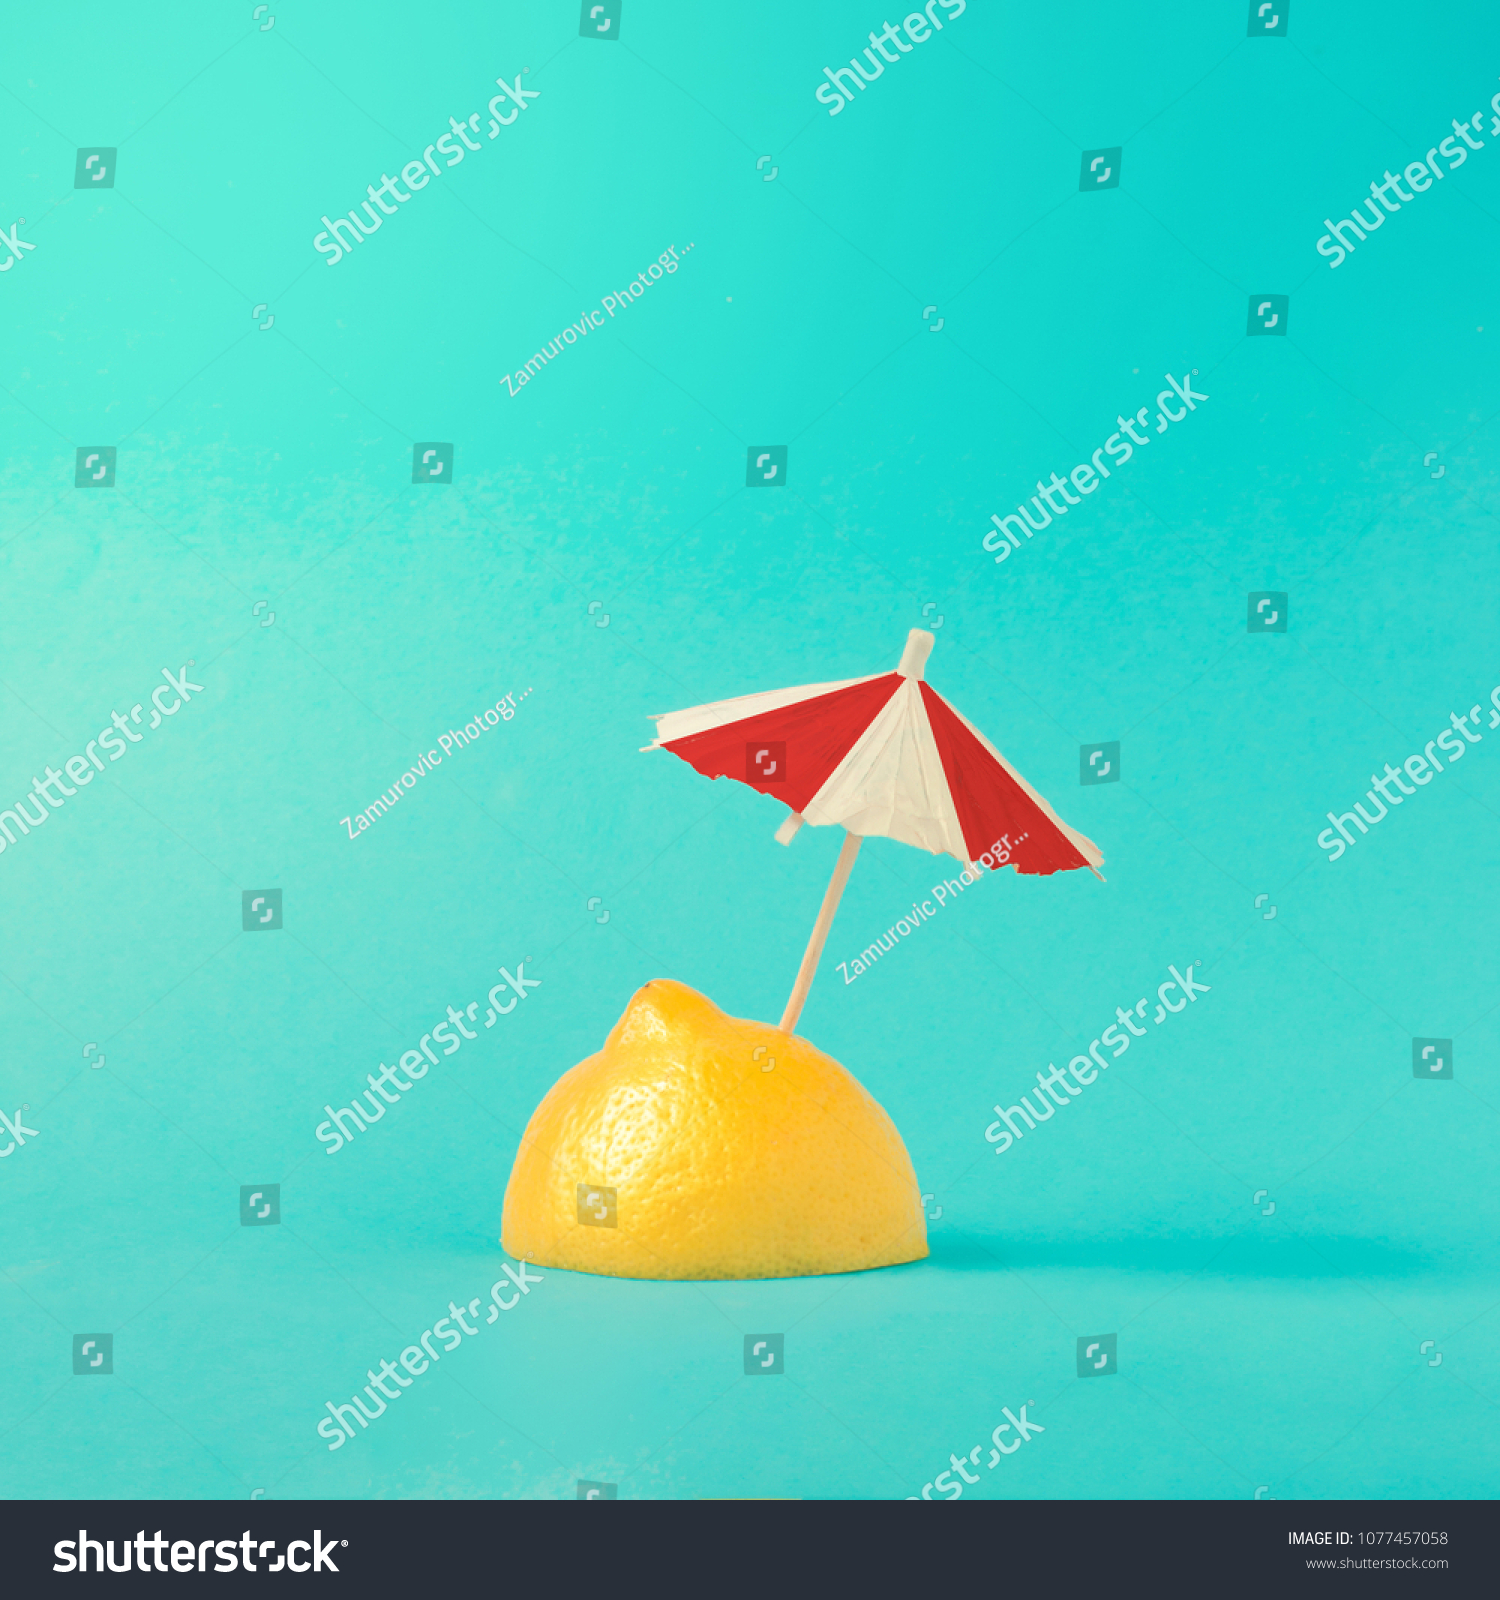 Tropical beach concept made of lemon and sun umbrella. Creative minimal summer idea. #1077457058